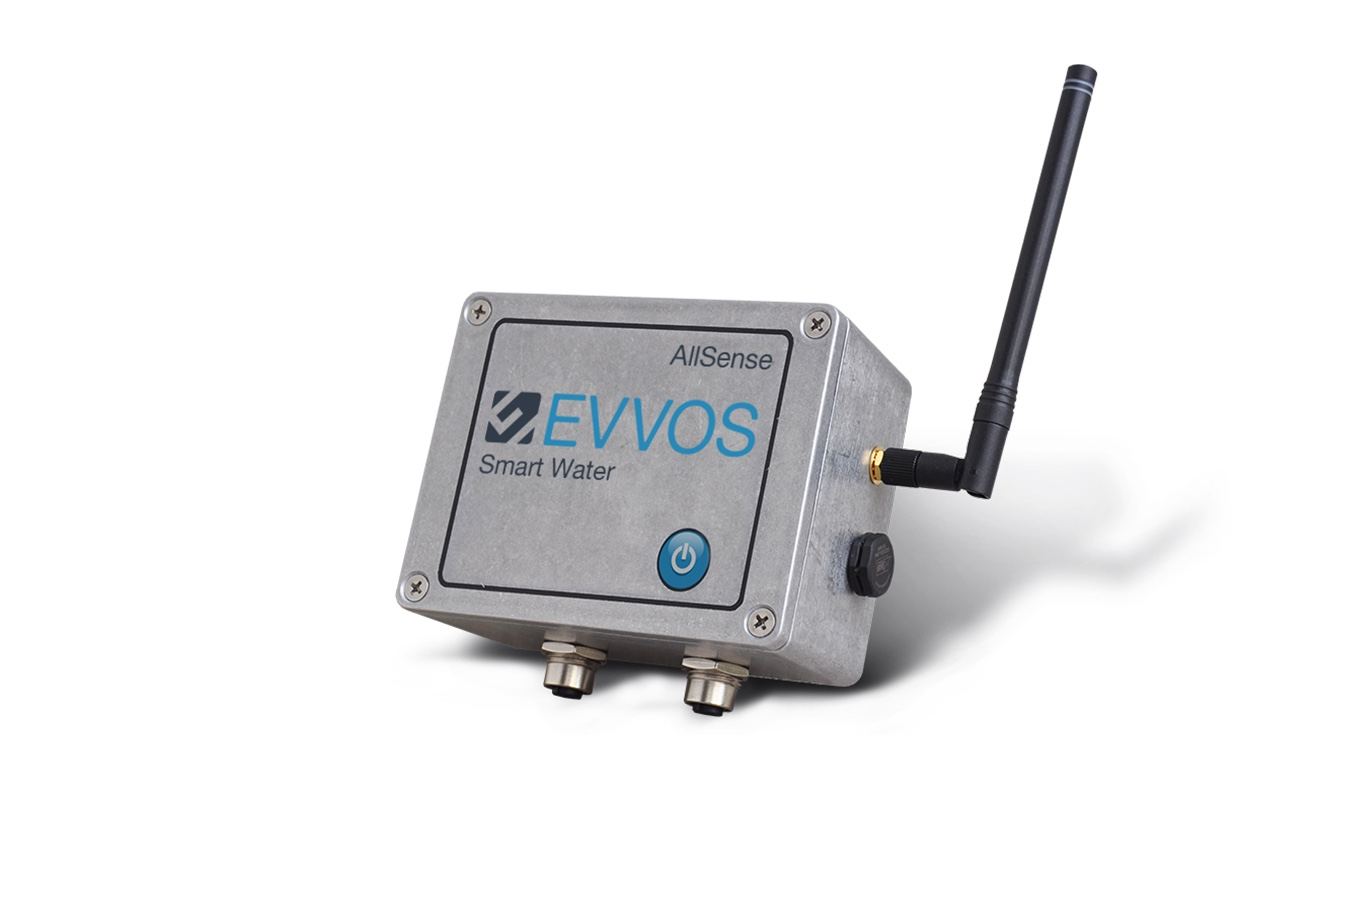 Allsense Smart Water Sigfox Partner Network The Iot Solution Book Level Sensor Or Liquid Detector Moisture Alarm Is An Autonomous Battery Powered Wireless Node Designed To Conduct Measurements With Various Types Of Specific Sensors Via A Number